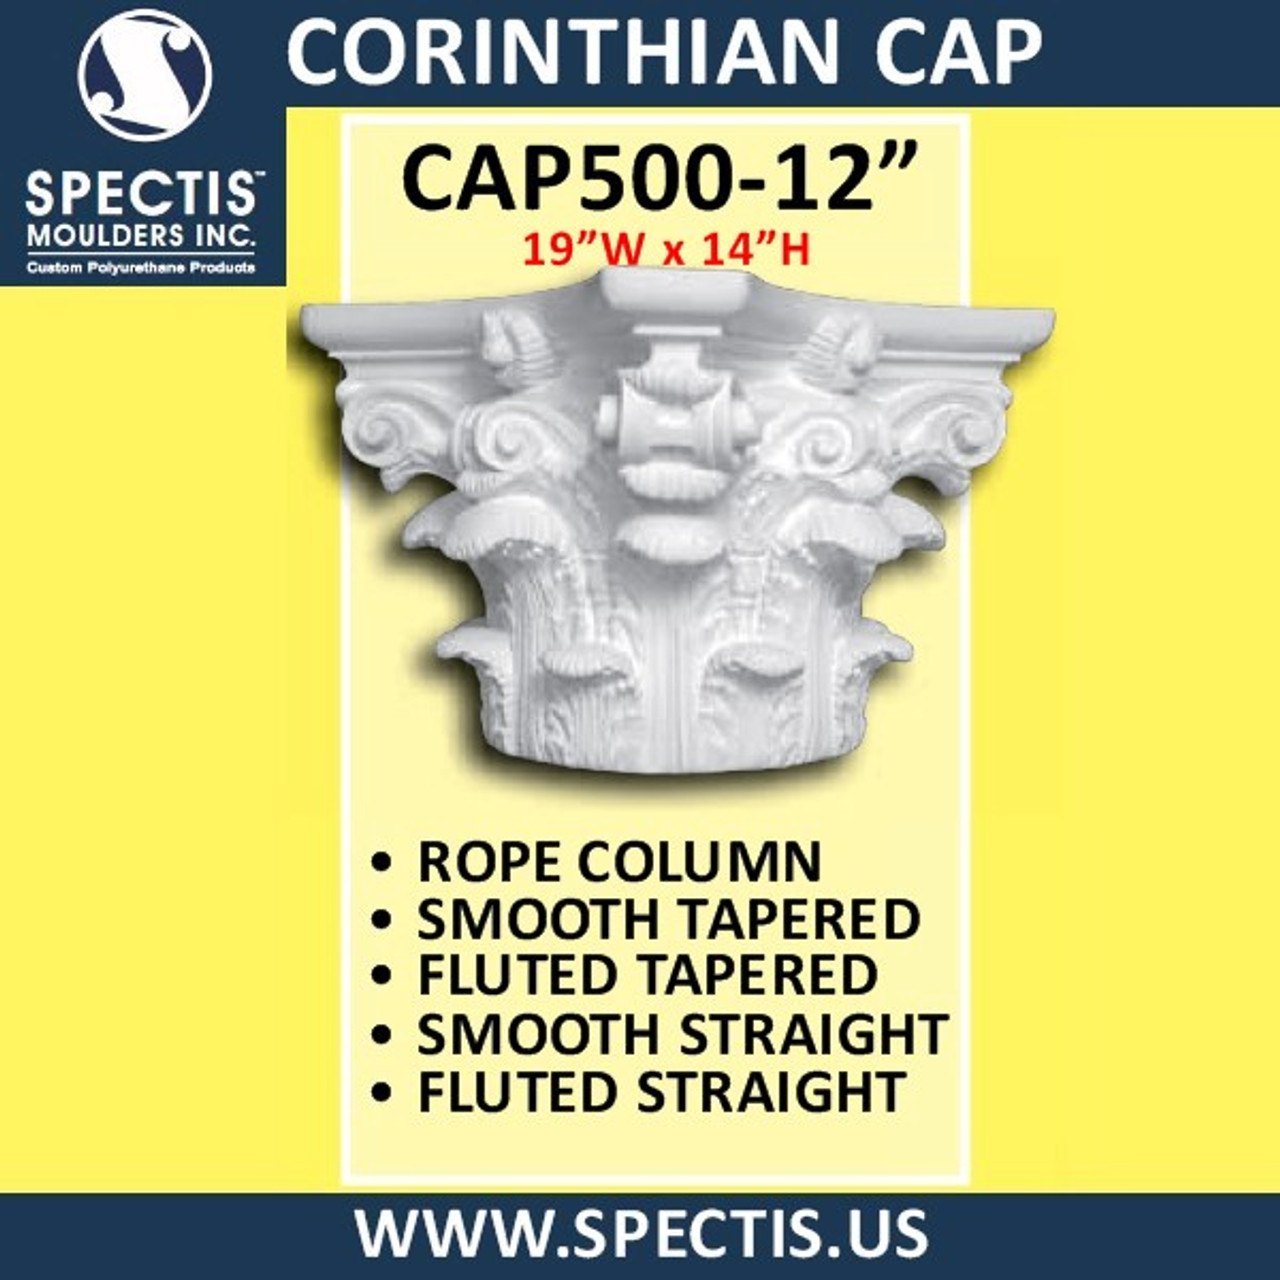 "CAP500-12 Corinthian Cap 19""W x 14""H for 12"" top column"